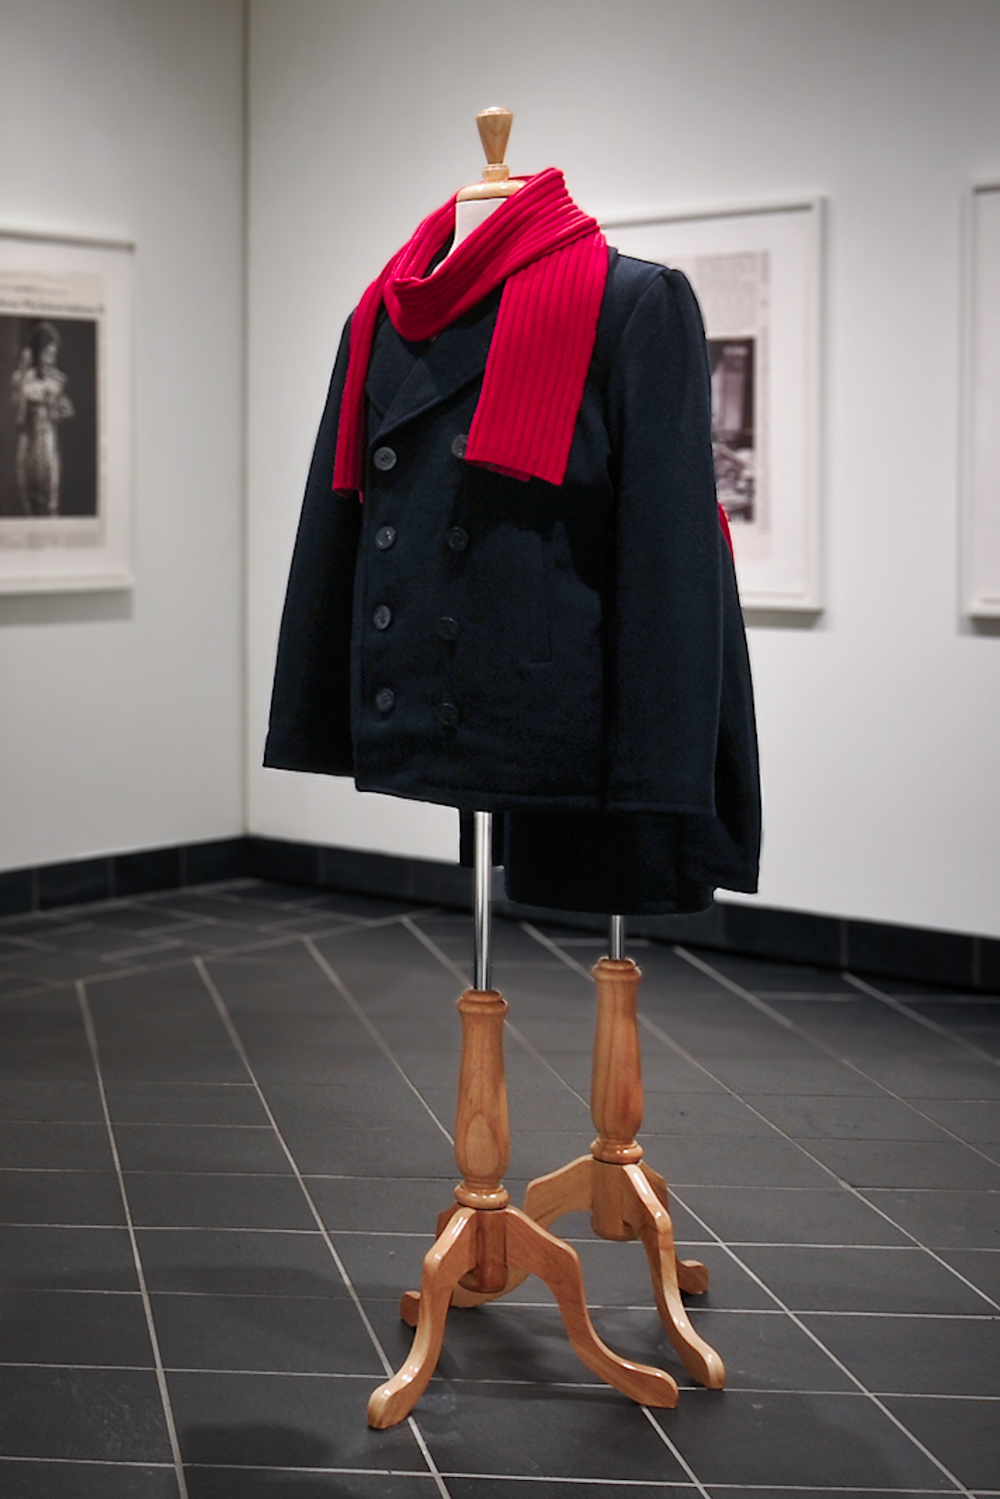 Installation view of the coats